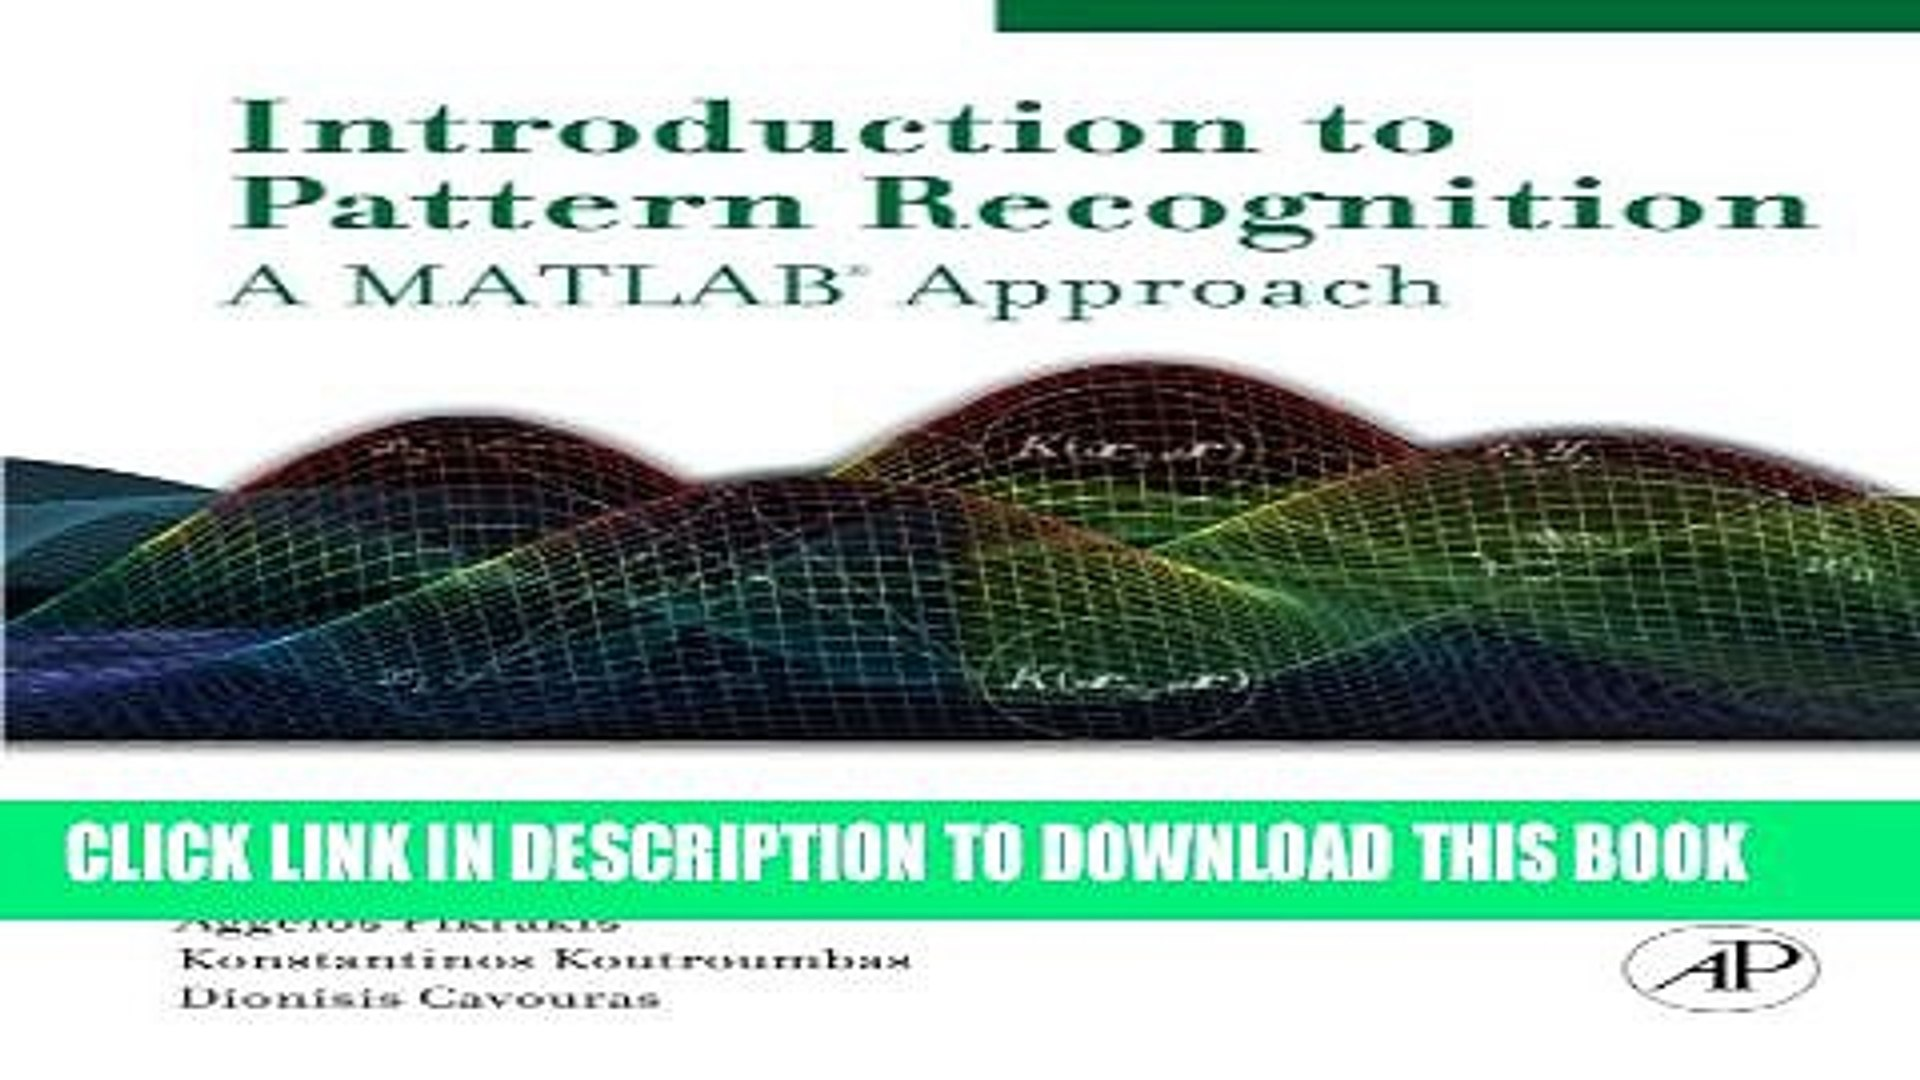 [PDF] Introduction to Pattern Recognition: A Matlab Approach Full Collection